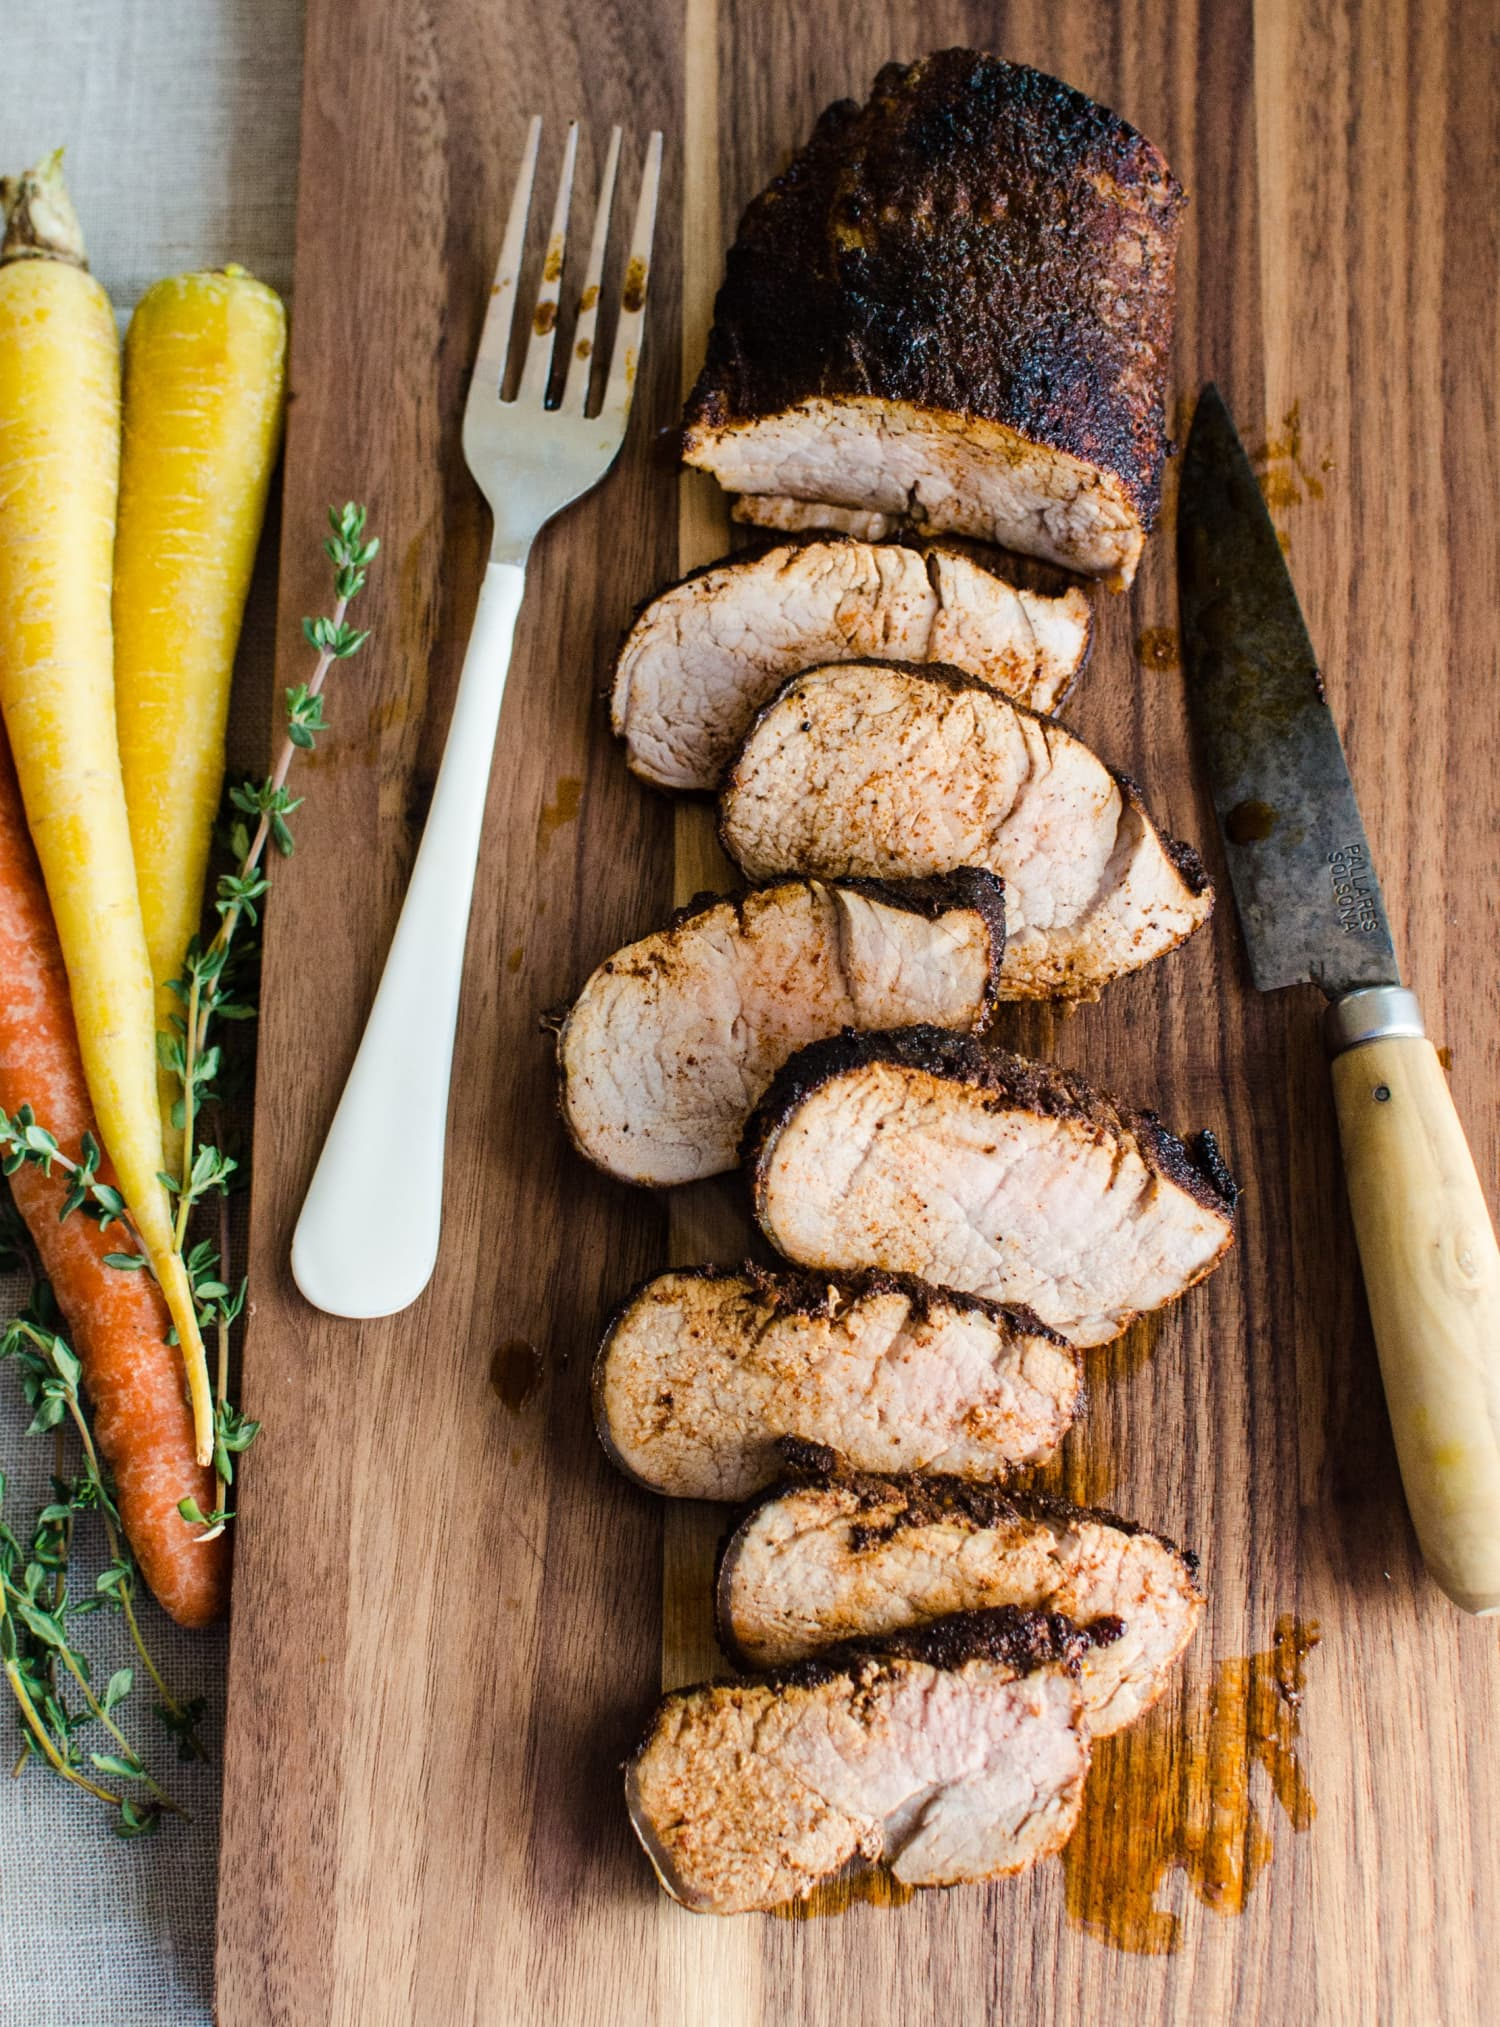 The Top 4 Ways to Cook Pork Tenderloin